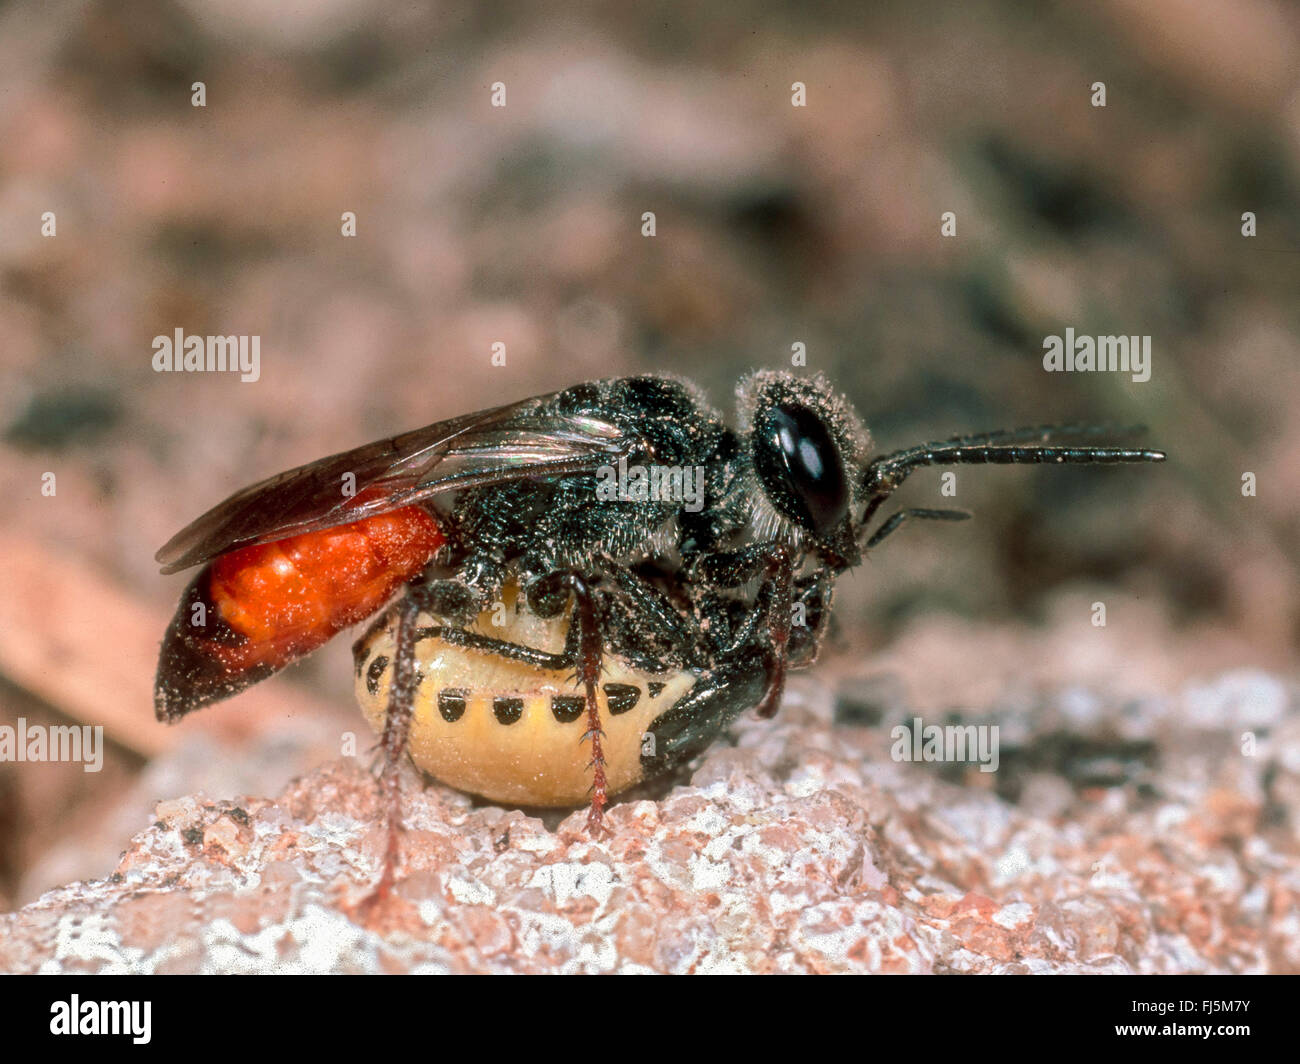 shild-backed bug (Astata boops), Female with Shield-backed Bug larva as prey, Germany - Stock Image